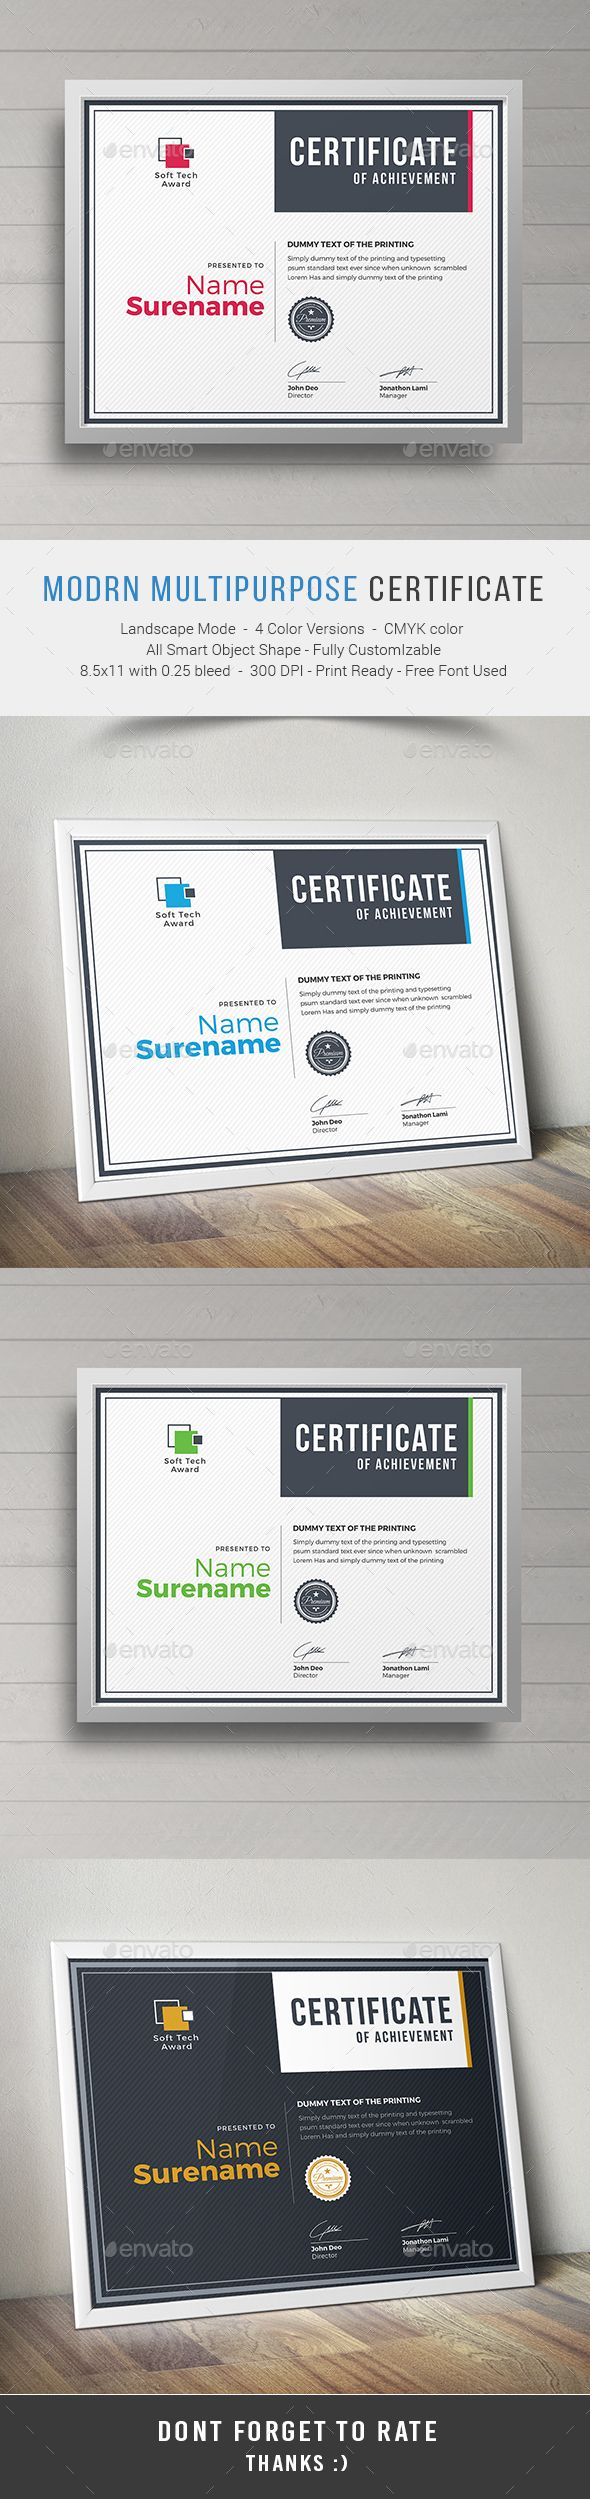 Modern Multipurpose Certificates - Certificate Template PSD. Download here: http://graphicriver.net/item/modern-multipurpose-certificates/15881469?s_rank=6&ref=yinkira